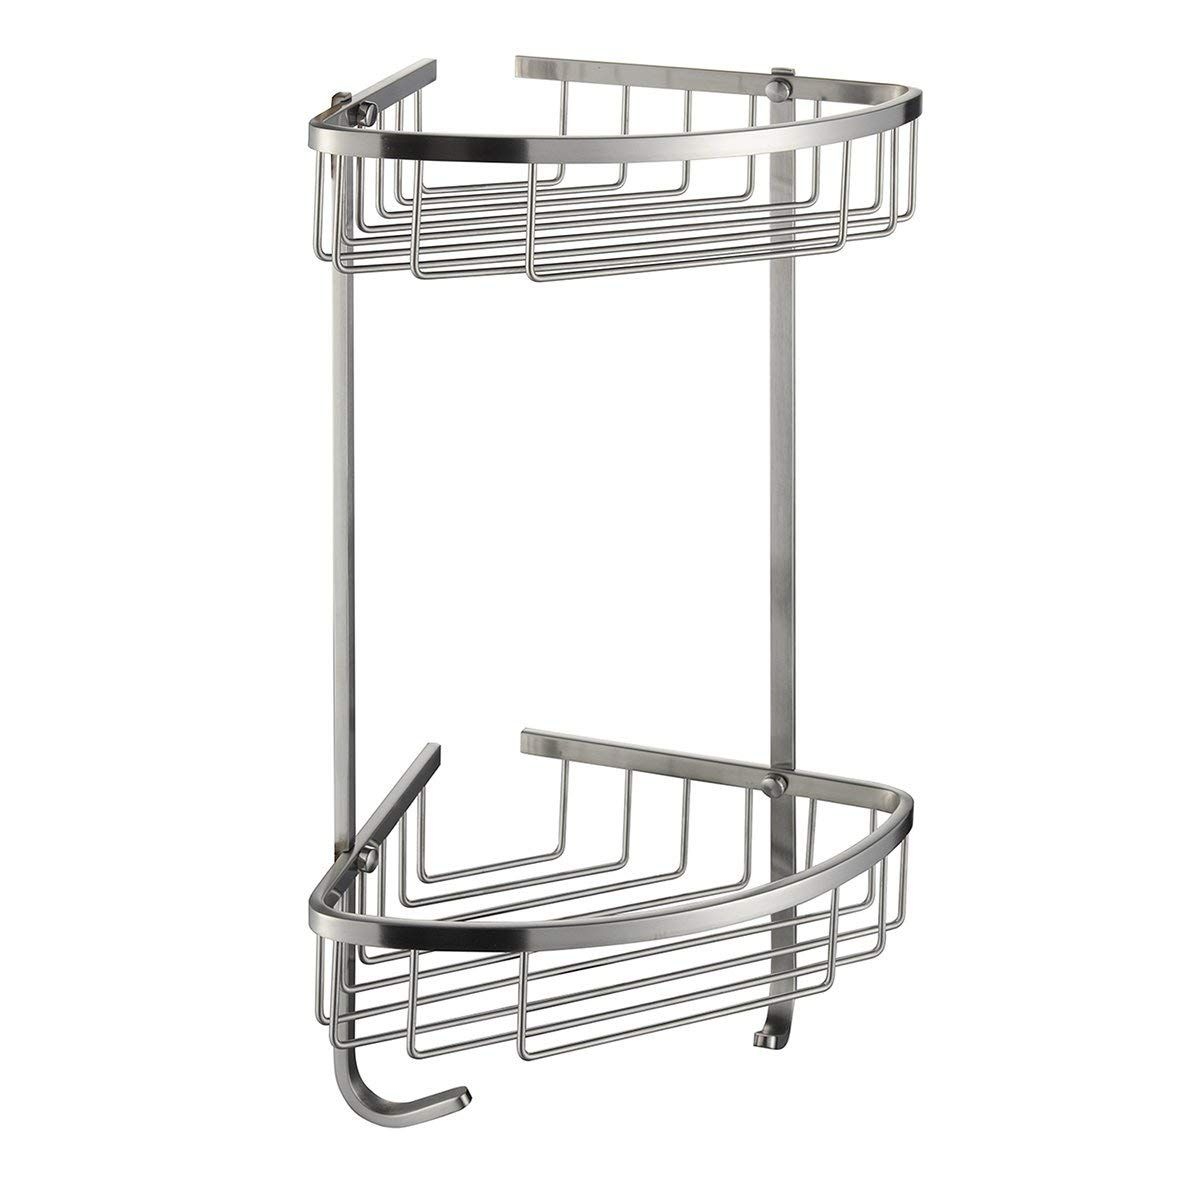 10 Best Corner Shower Caddy In 2020 With Buying Guides With Images Corner Shower Caddy Shower Caddy Stainless Steel Bathroom